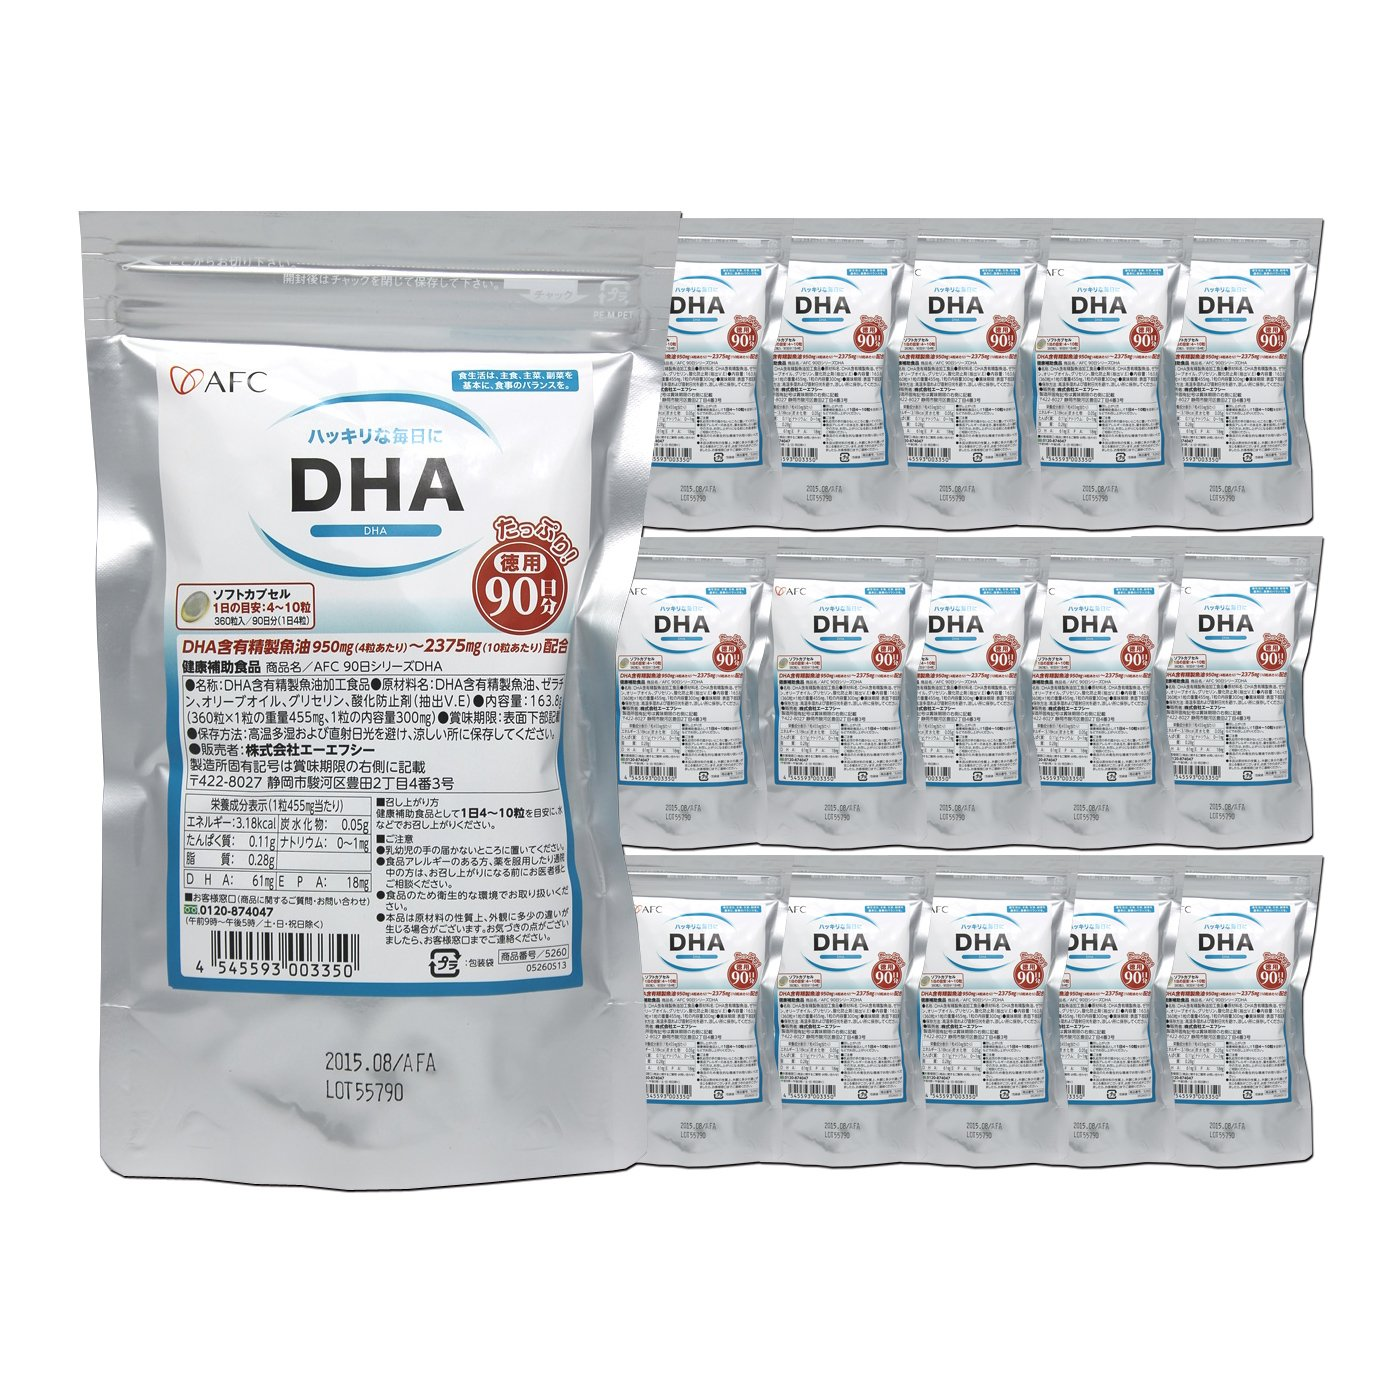 AFC DHA for 4 years (90 days series * 16 sets)